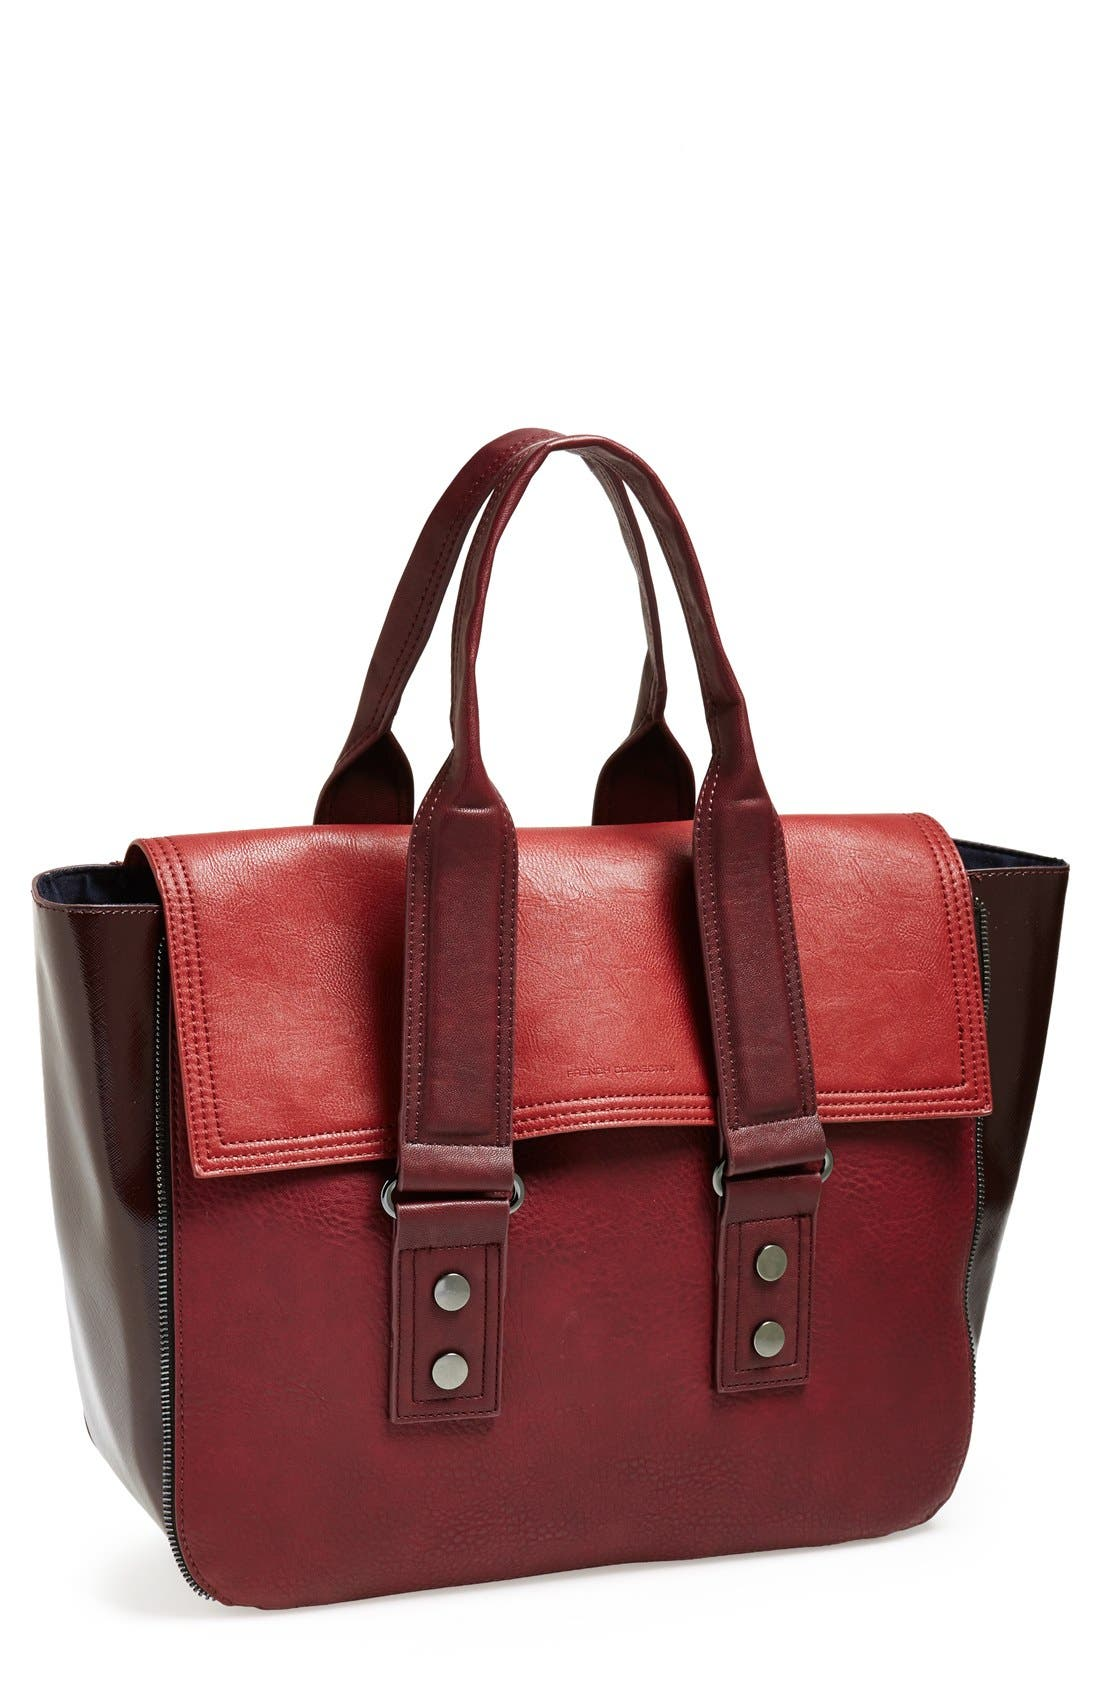 Alternate Image 1 Selected - French Connection 'Elite' Faux Leather Tote